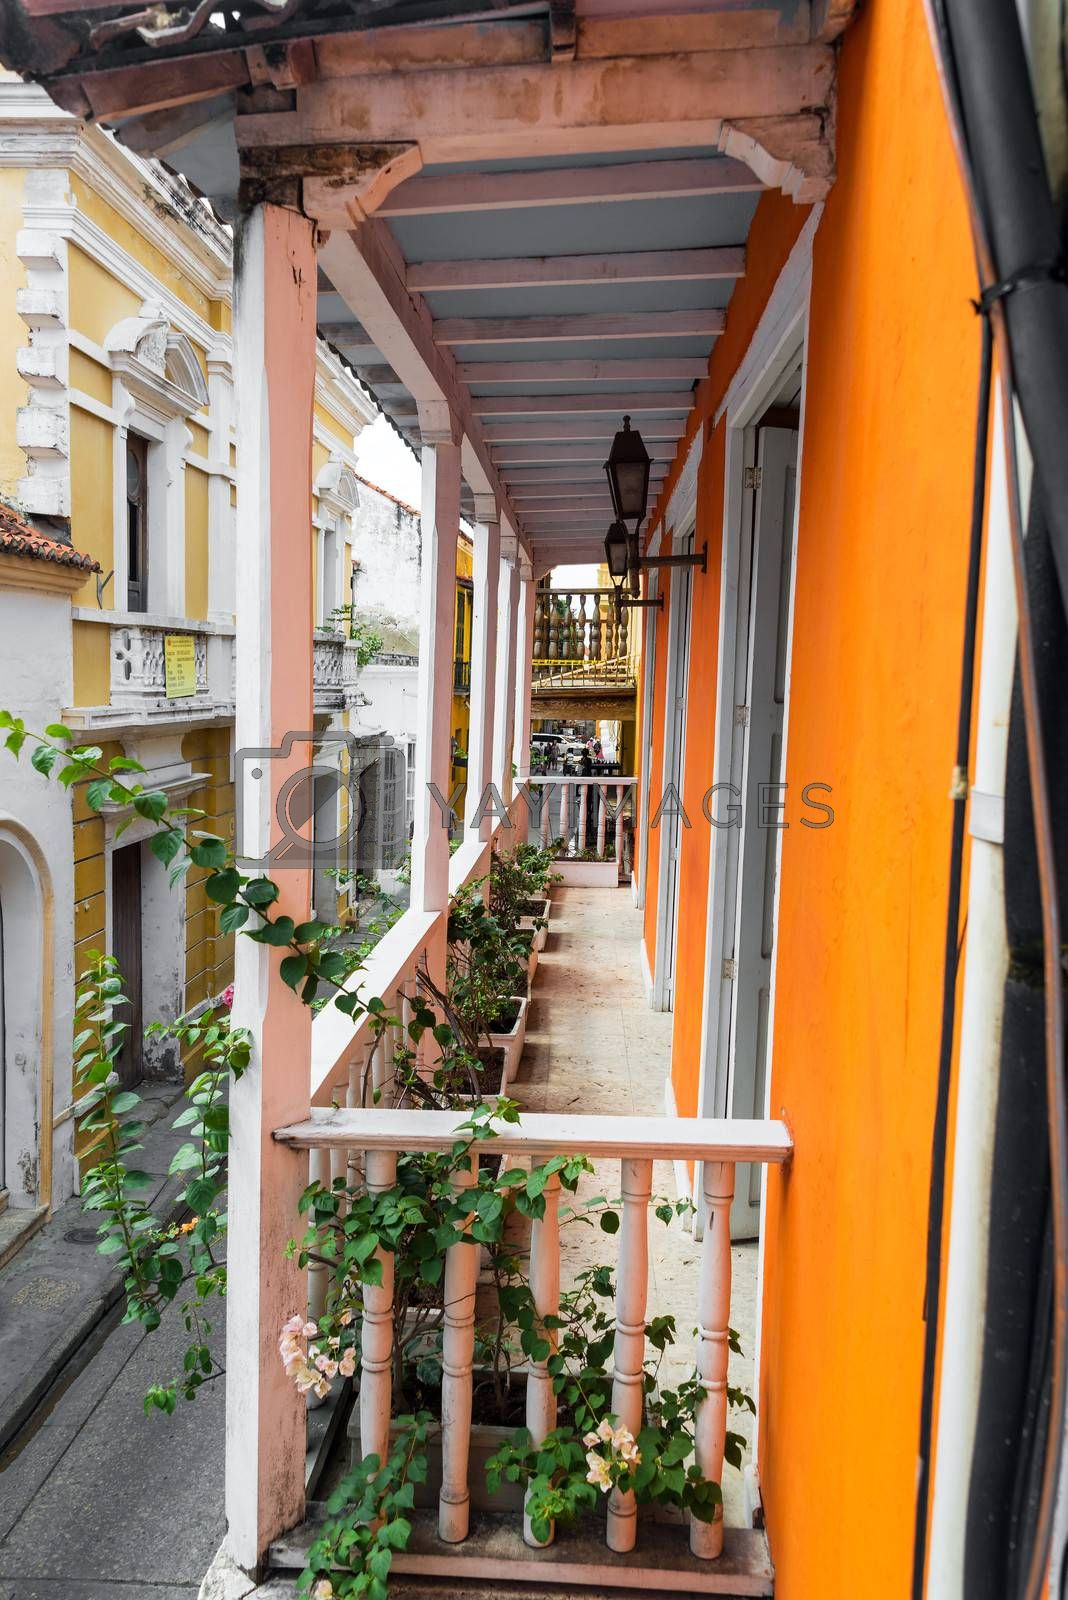 View of orange and white colonial balcony in the historic city of Cartagena, Colombia